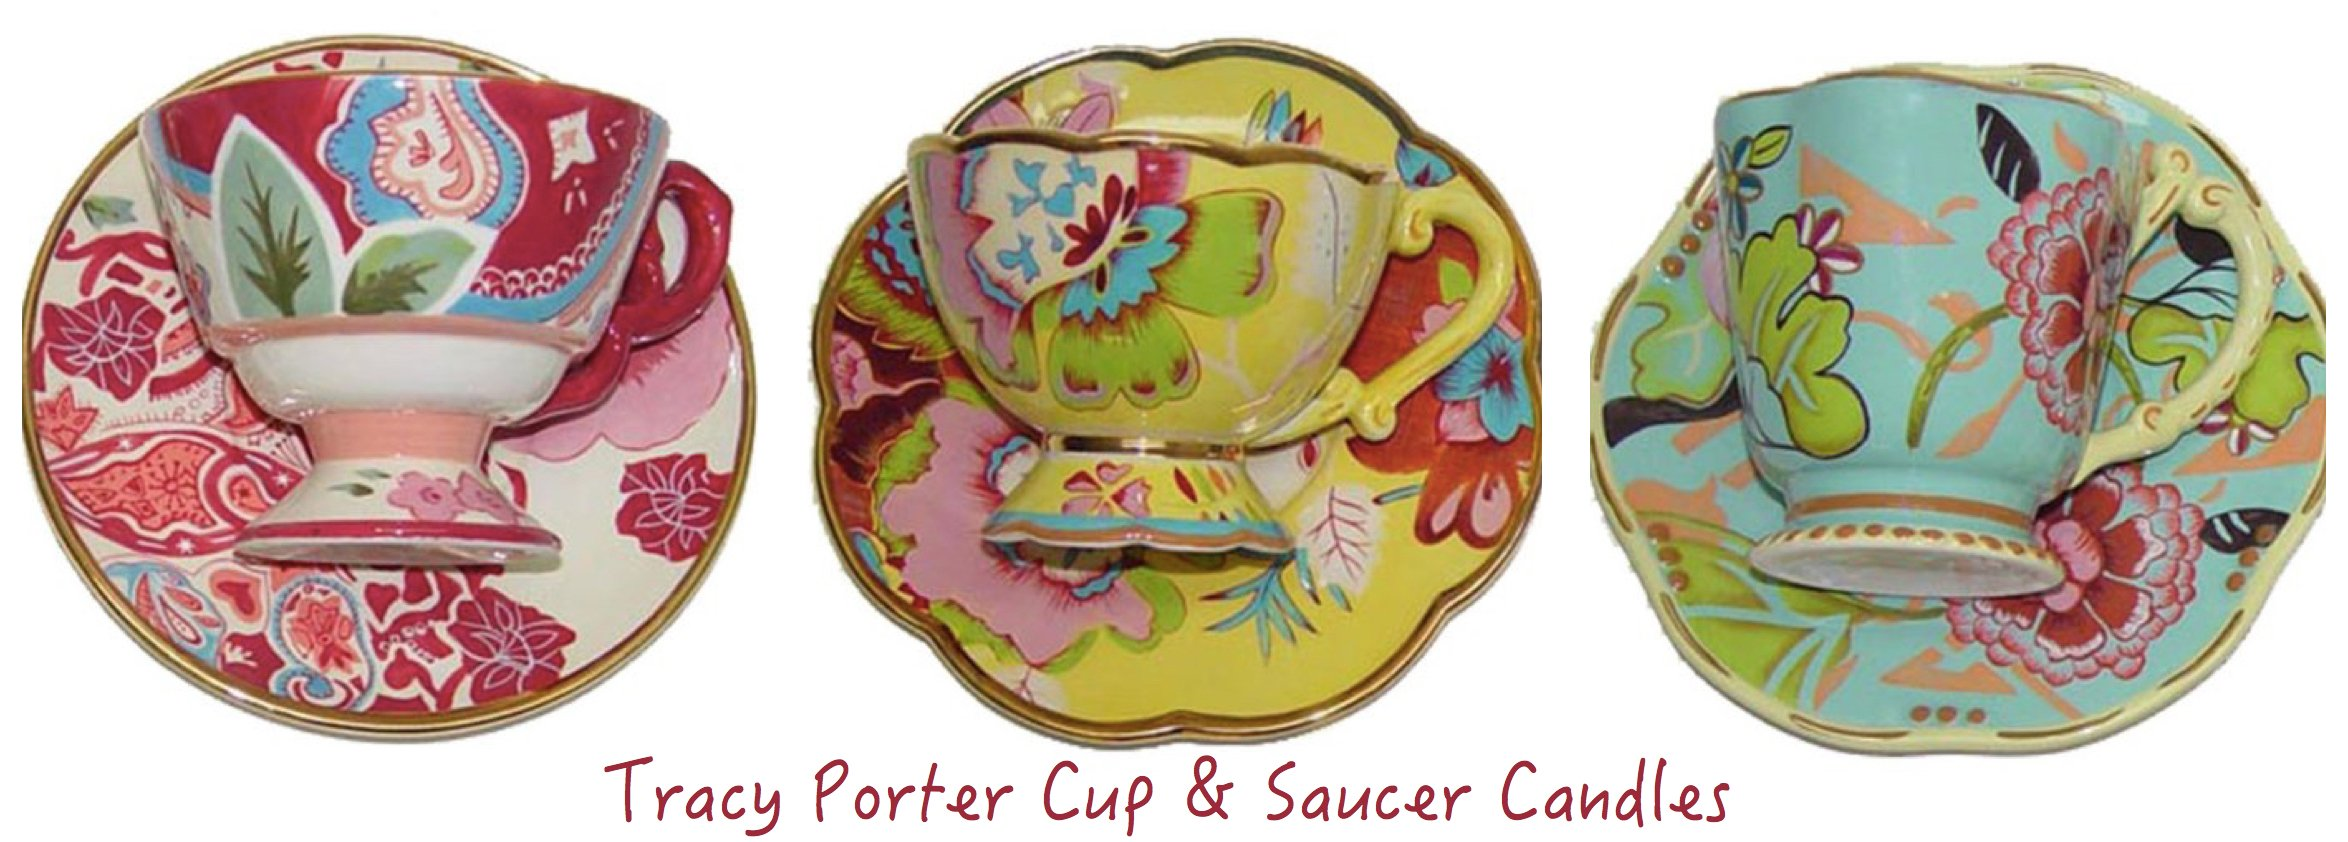 Tracy Porter Cup and Saucer Candles